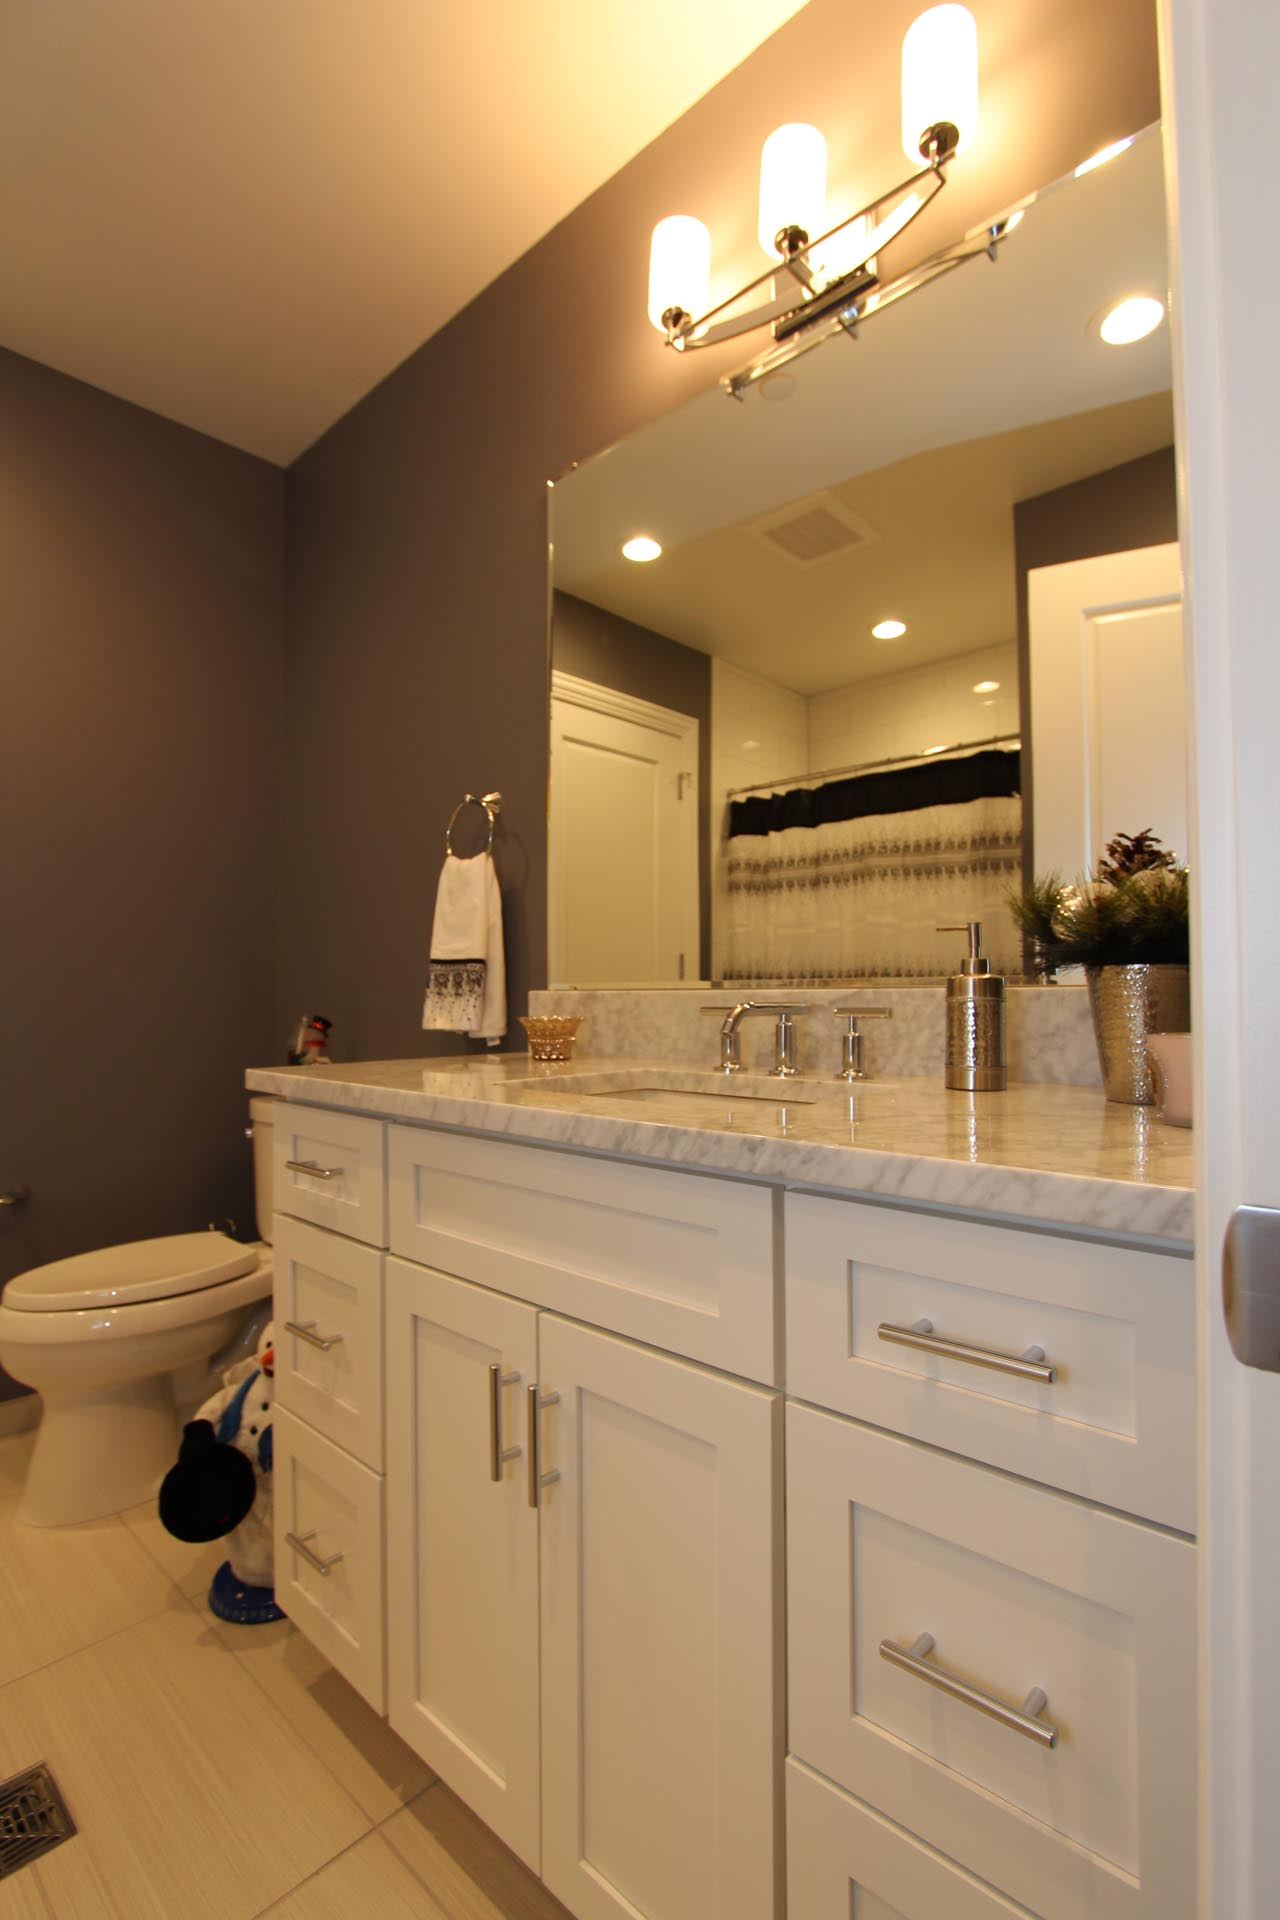 Bathroom Sink and Toilet | 9 East Main St | Uptown Bay City